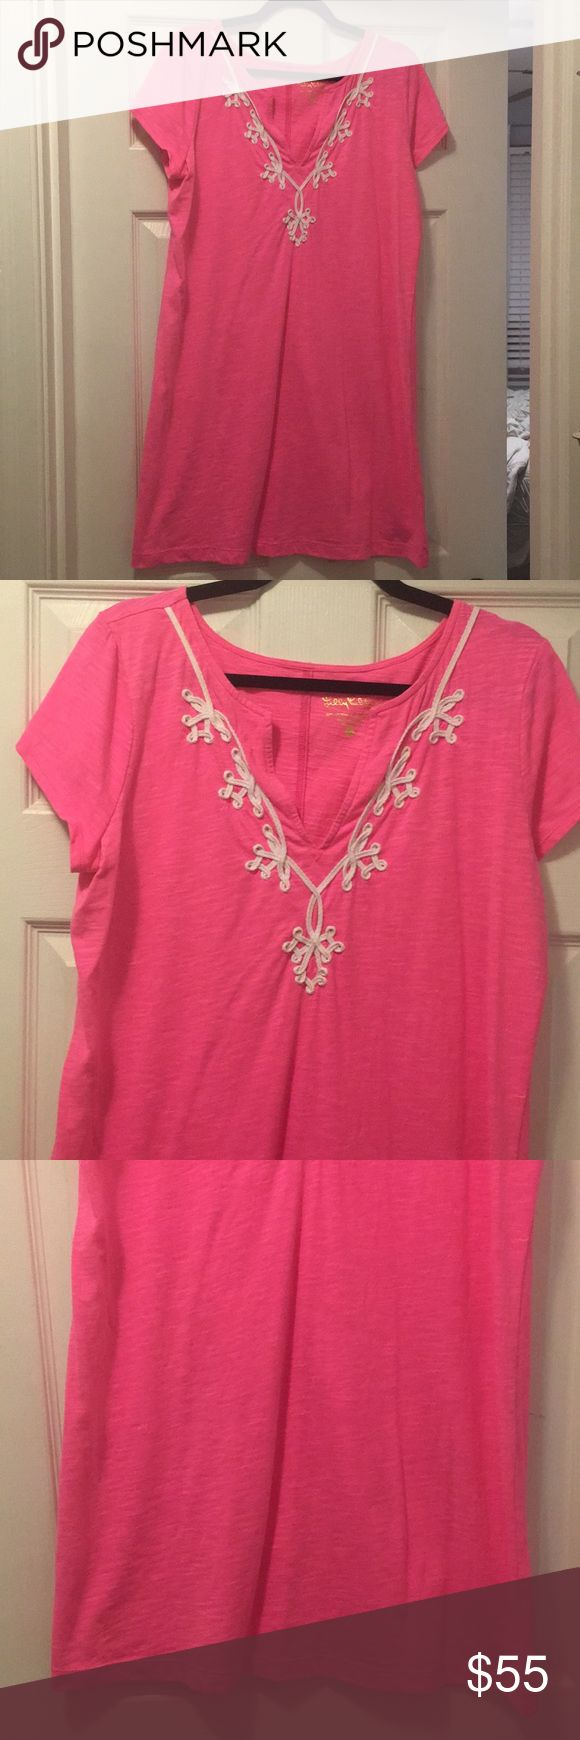 Lilly Pulitzer Neon Pink Dress Worn once! Super cute. Fits TTS. Lilly Pulitzer Dresses Mini